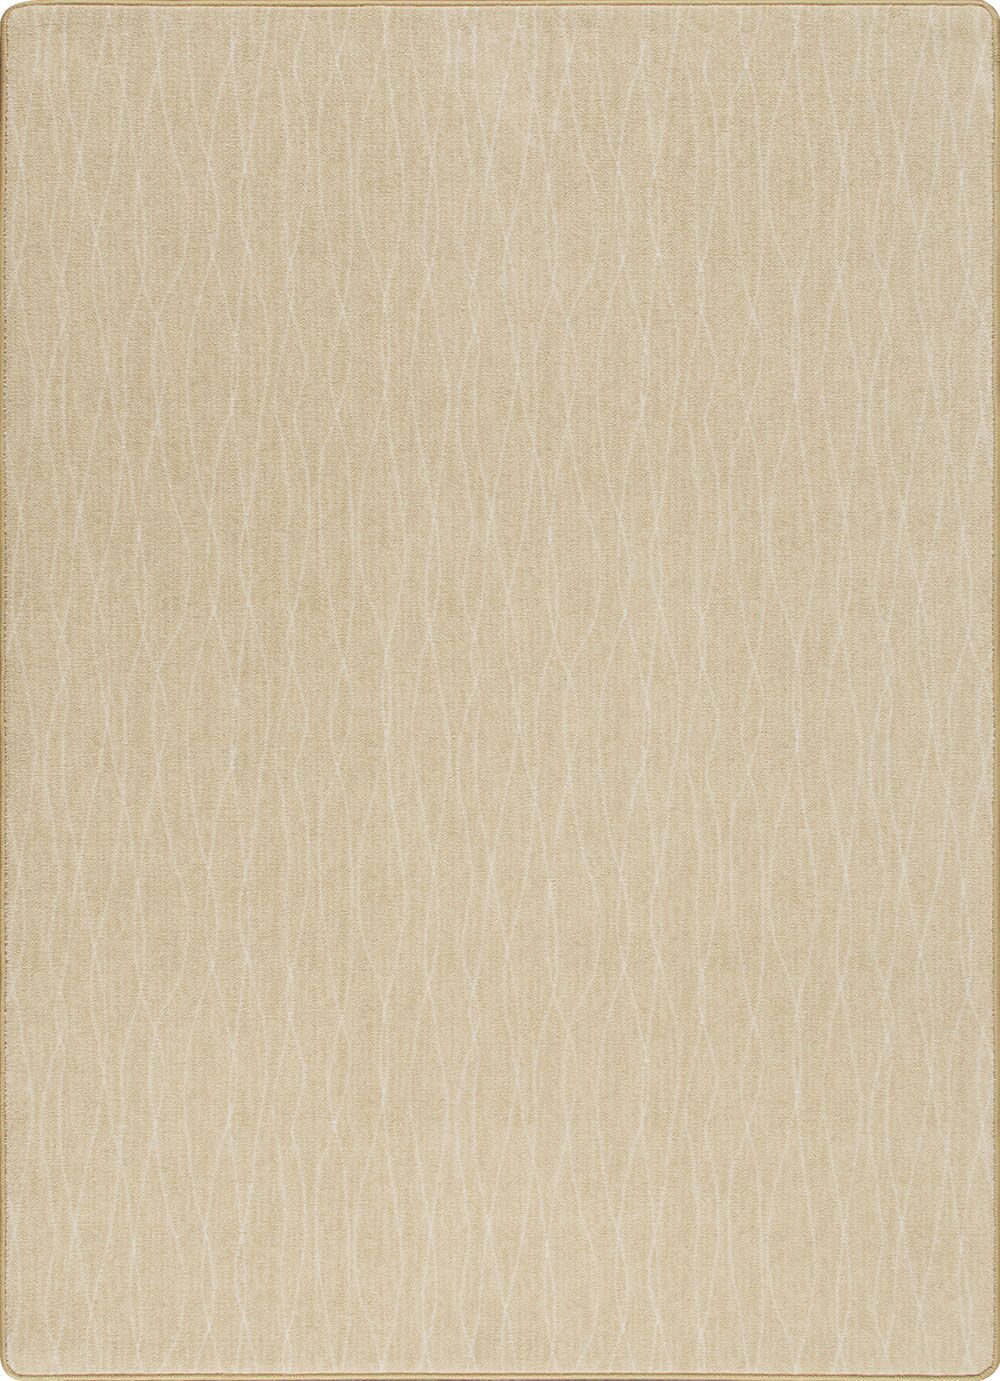 Booker Pampas Taupe Area Rug Rug Size: Rectangle 2'1